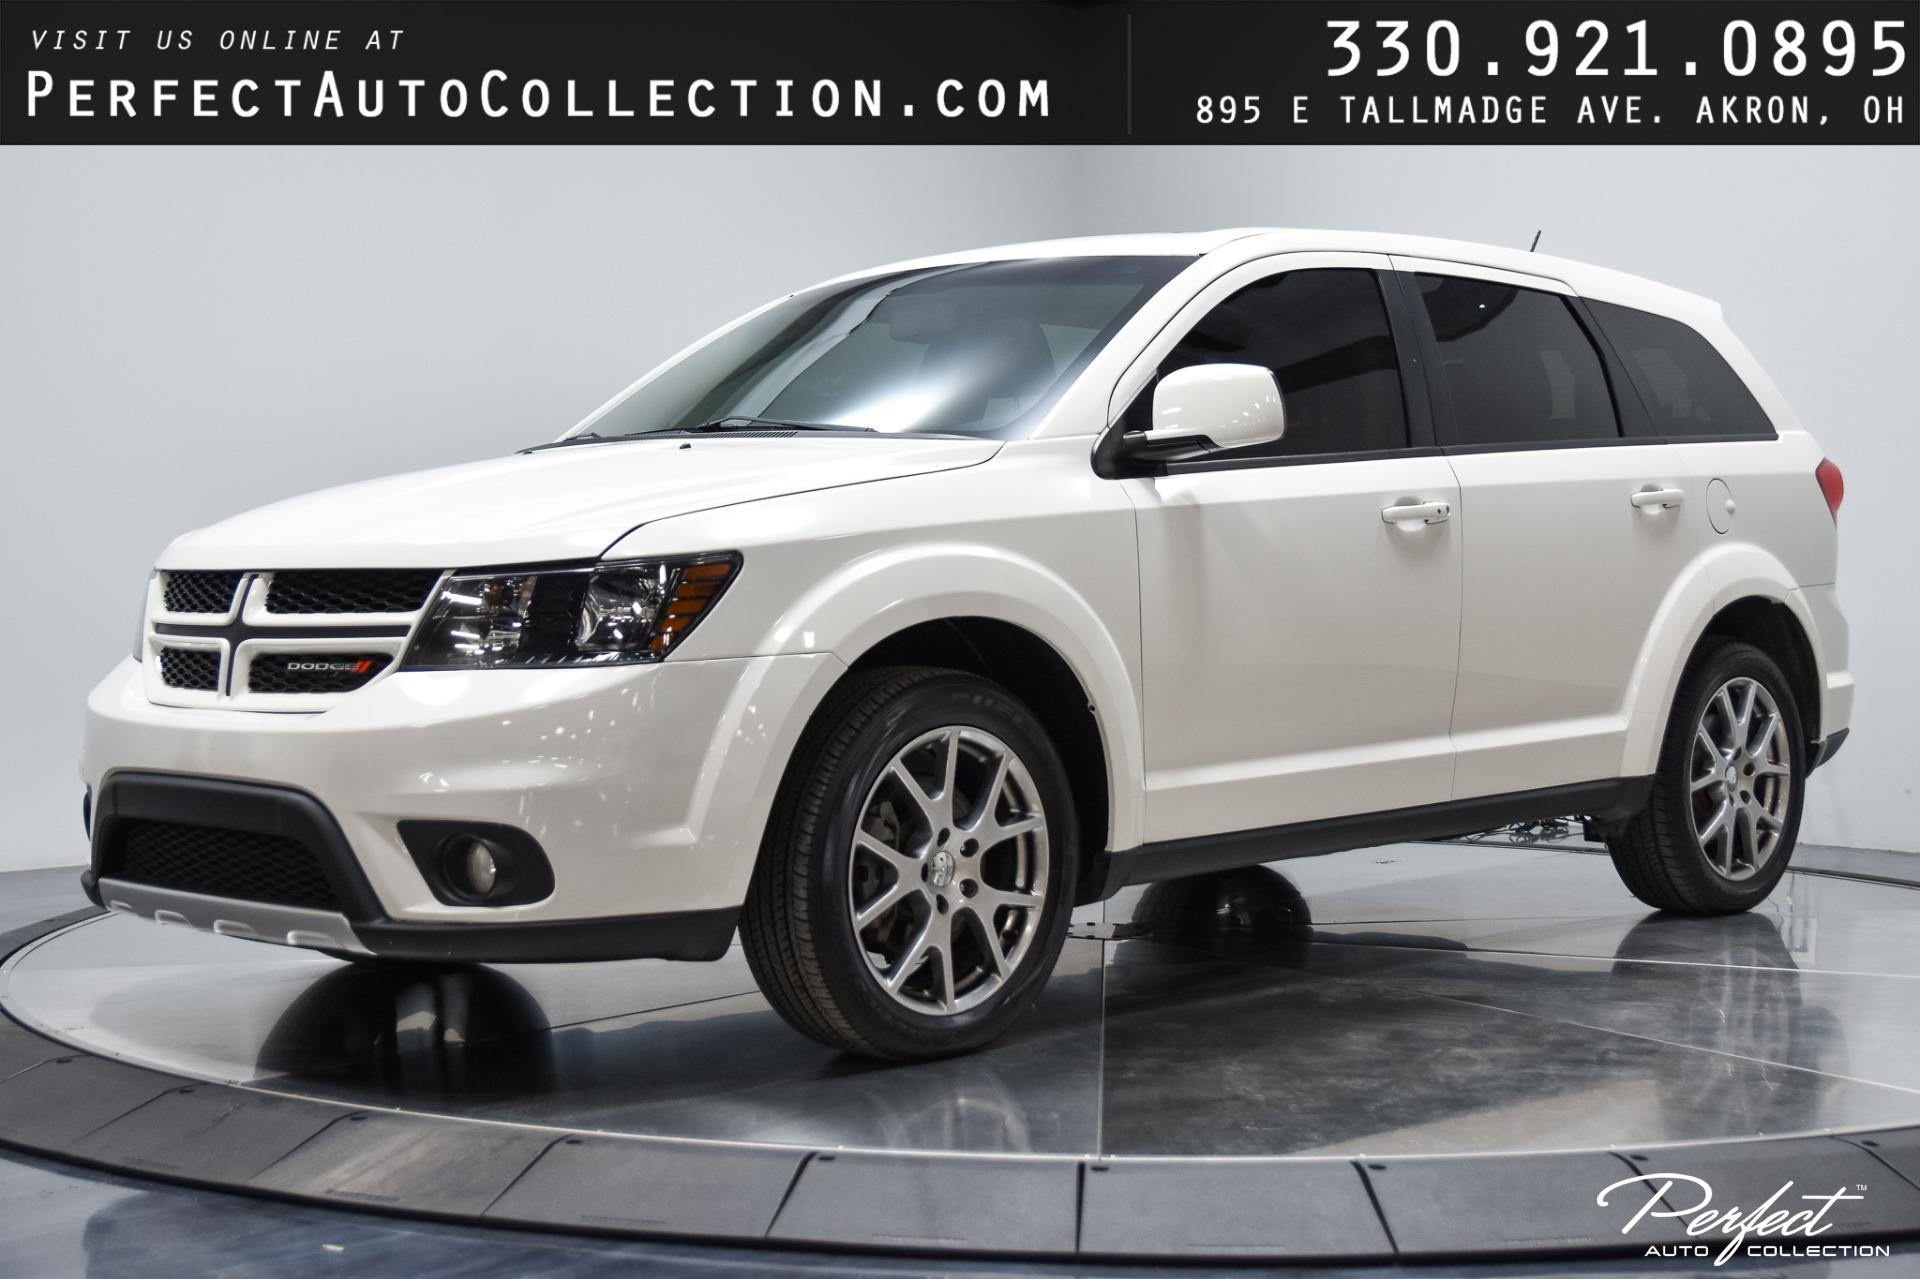 Used 2016 Dodge Journey R/T for sale $15,495 at Perfect Auto Collection in Akron OH 44310 1